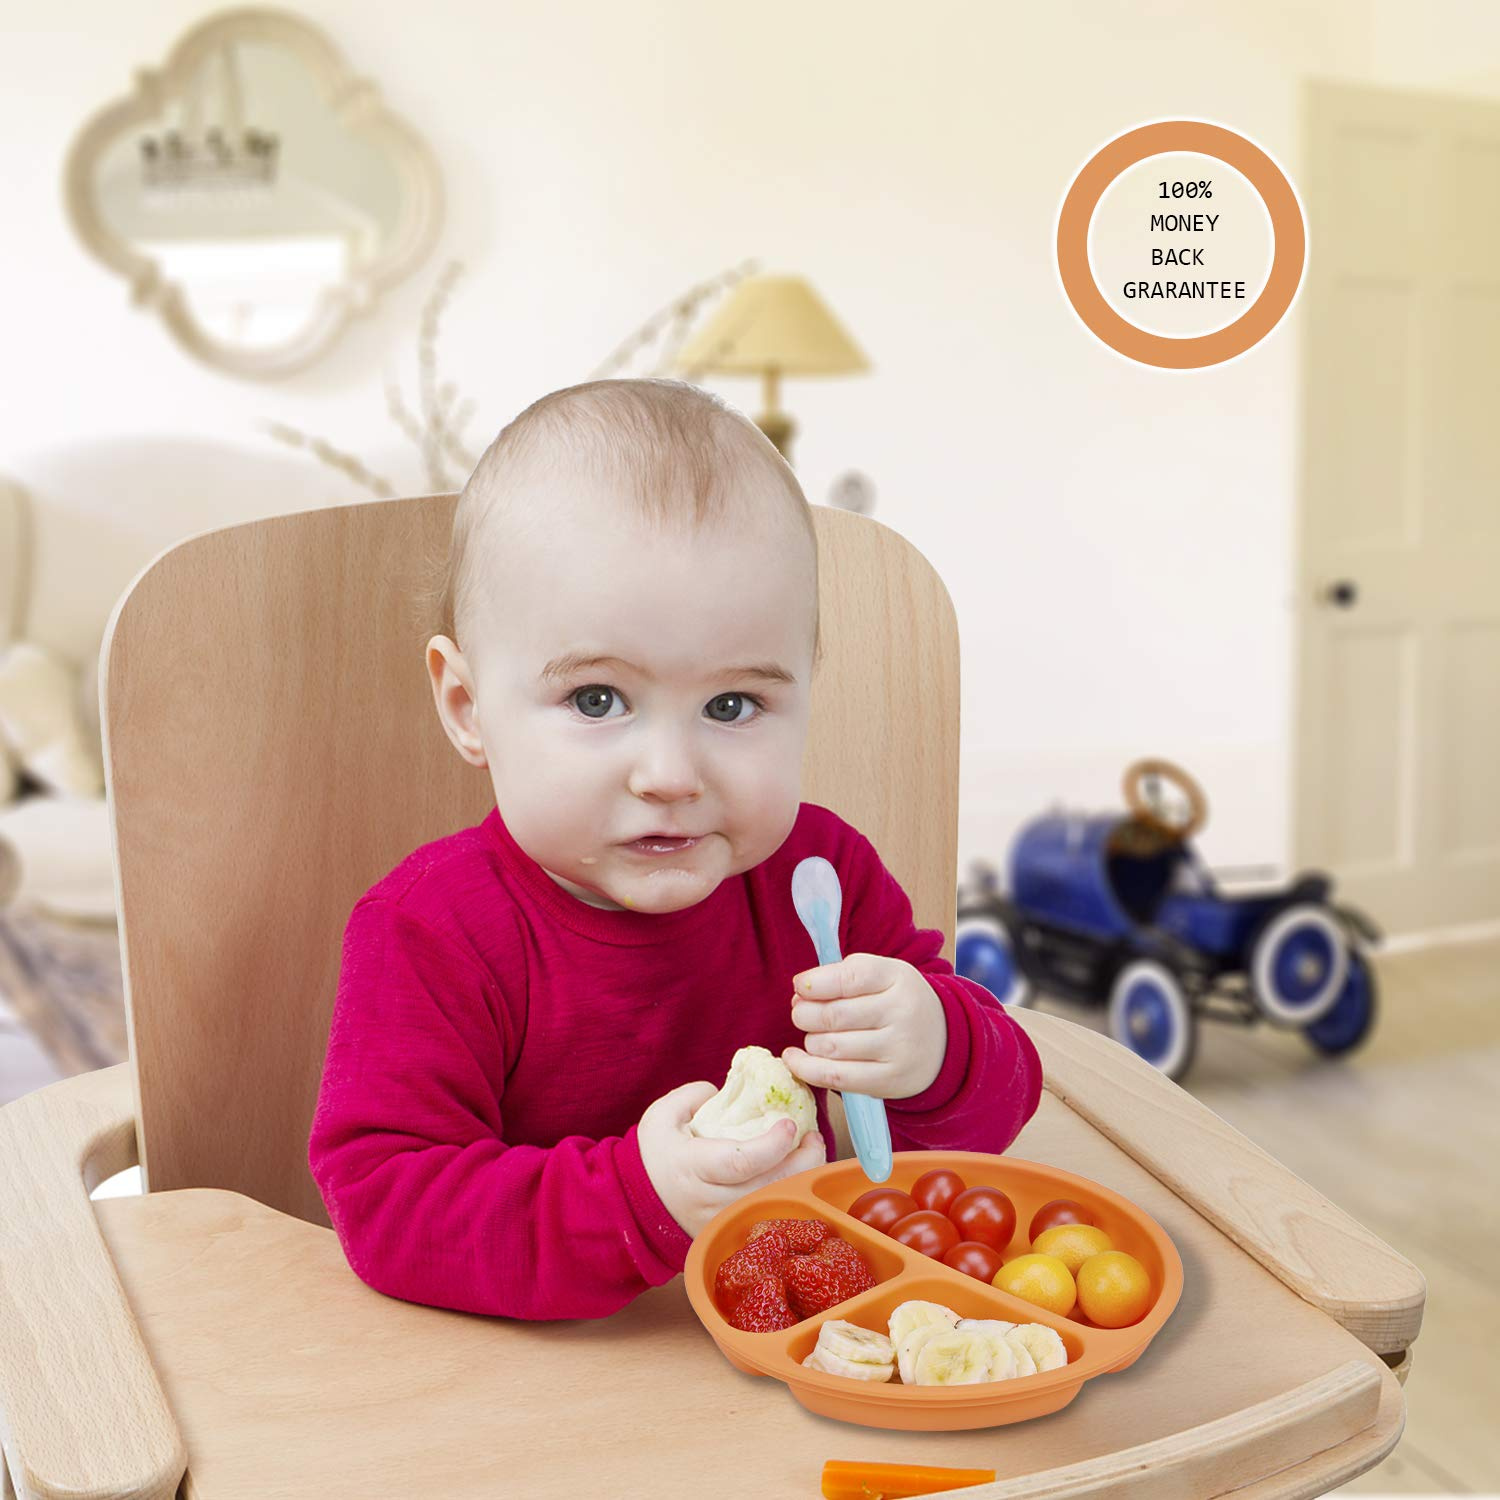 Powcan Baby Plates BPA-Free Kids Plates Divided One-Piece Toddler Plates Flexible Childrens Plate Strong Suction Non-Slip Silicone Baby Placemat Plate with Spoon Dishwasher /& Microwave Safe